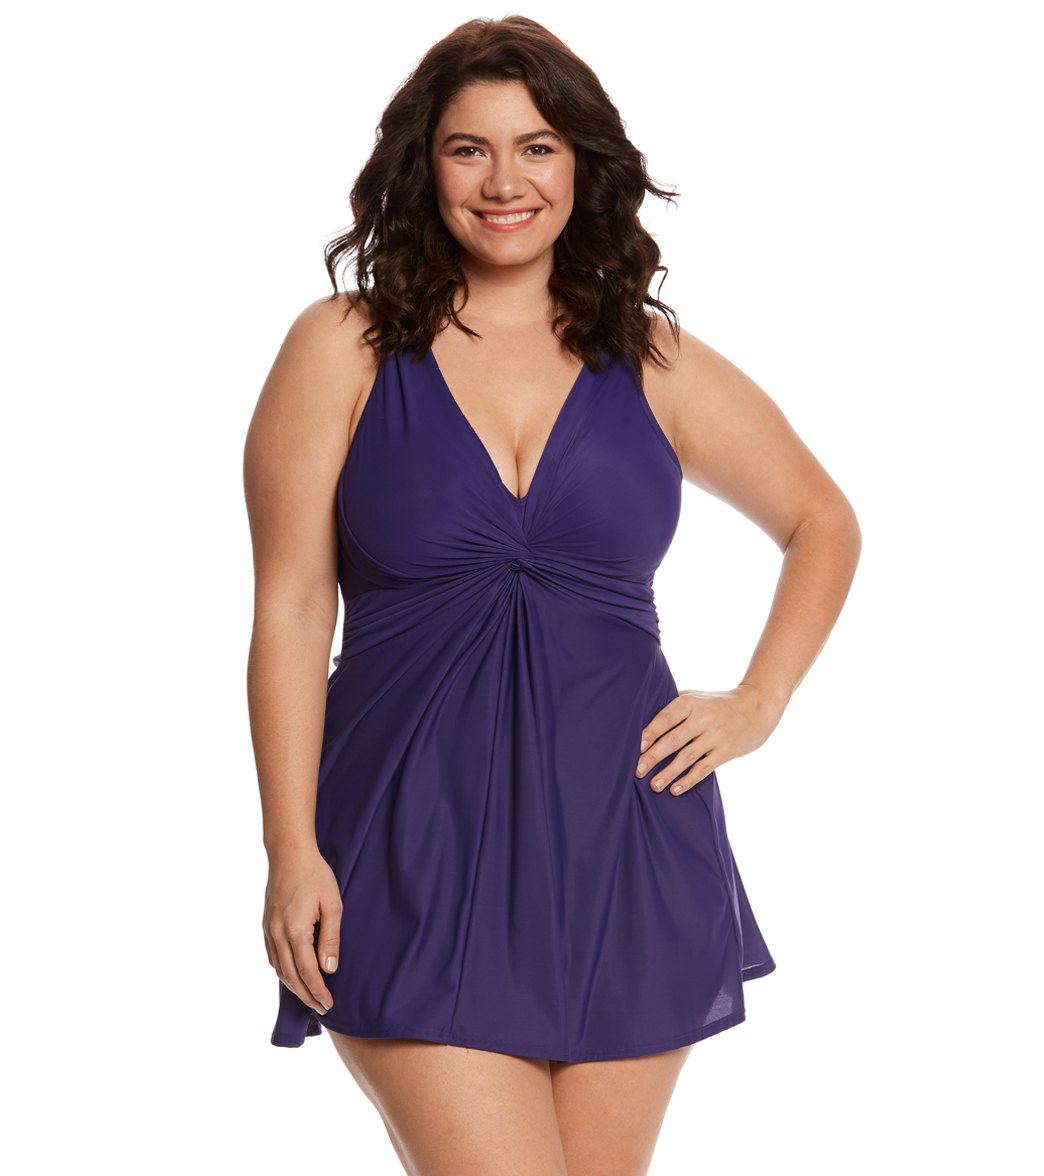 bb50d72ff8 How to Choose Flattering Plus Size Swimwear